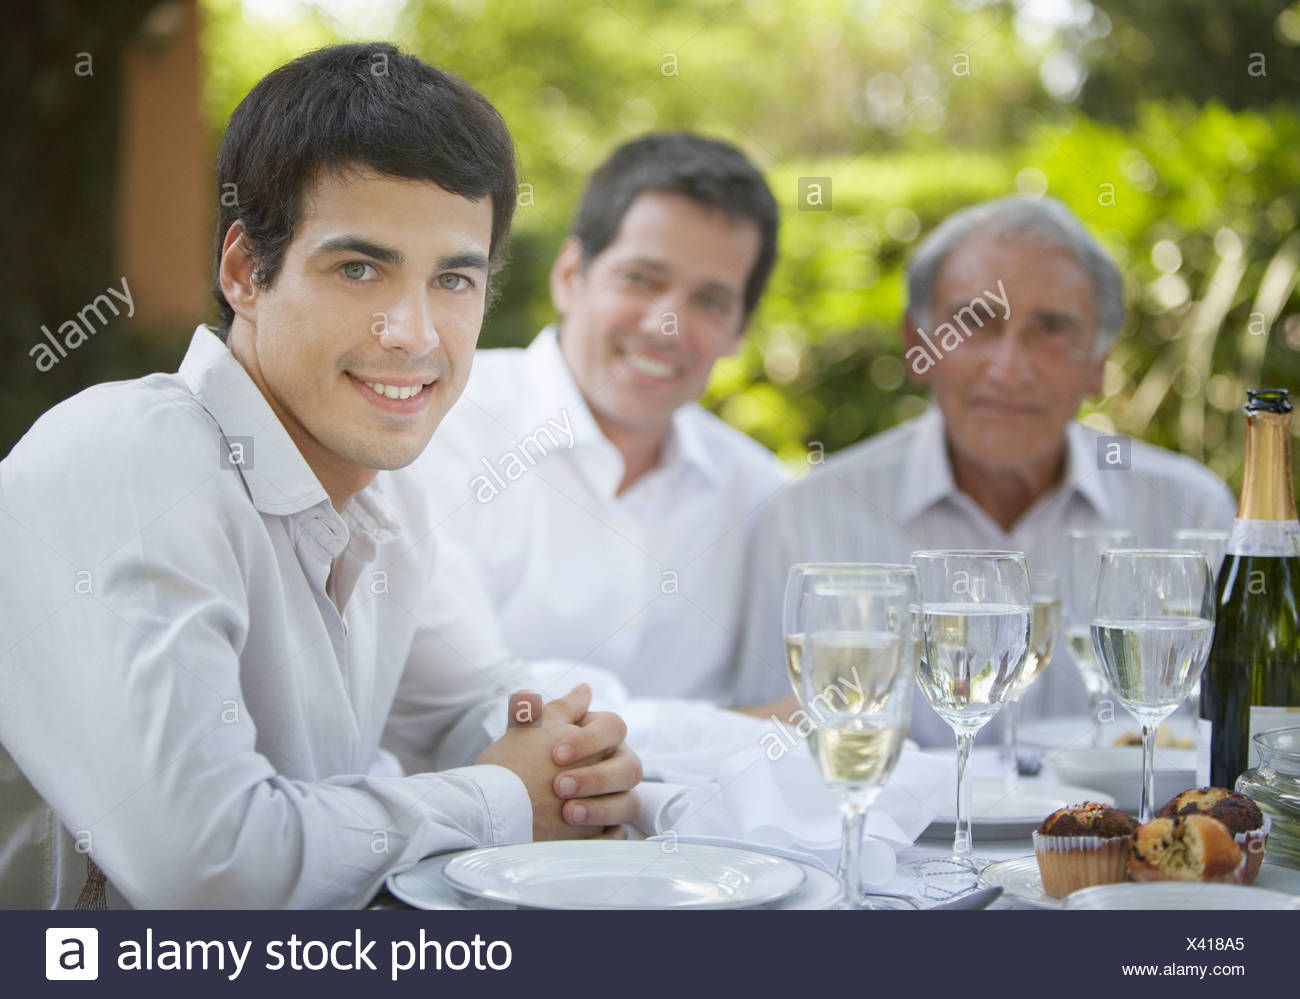 Man at outdoor party smiling with people in background - Stock Image